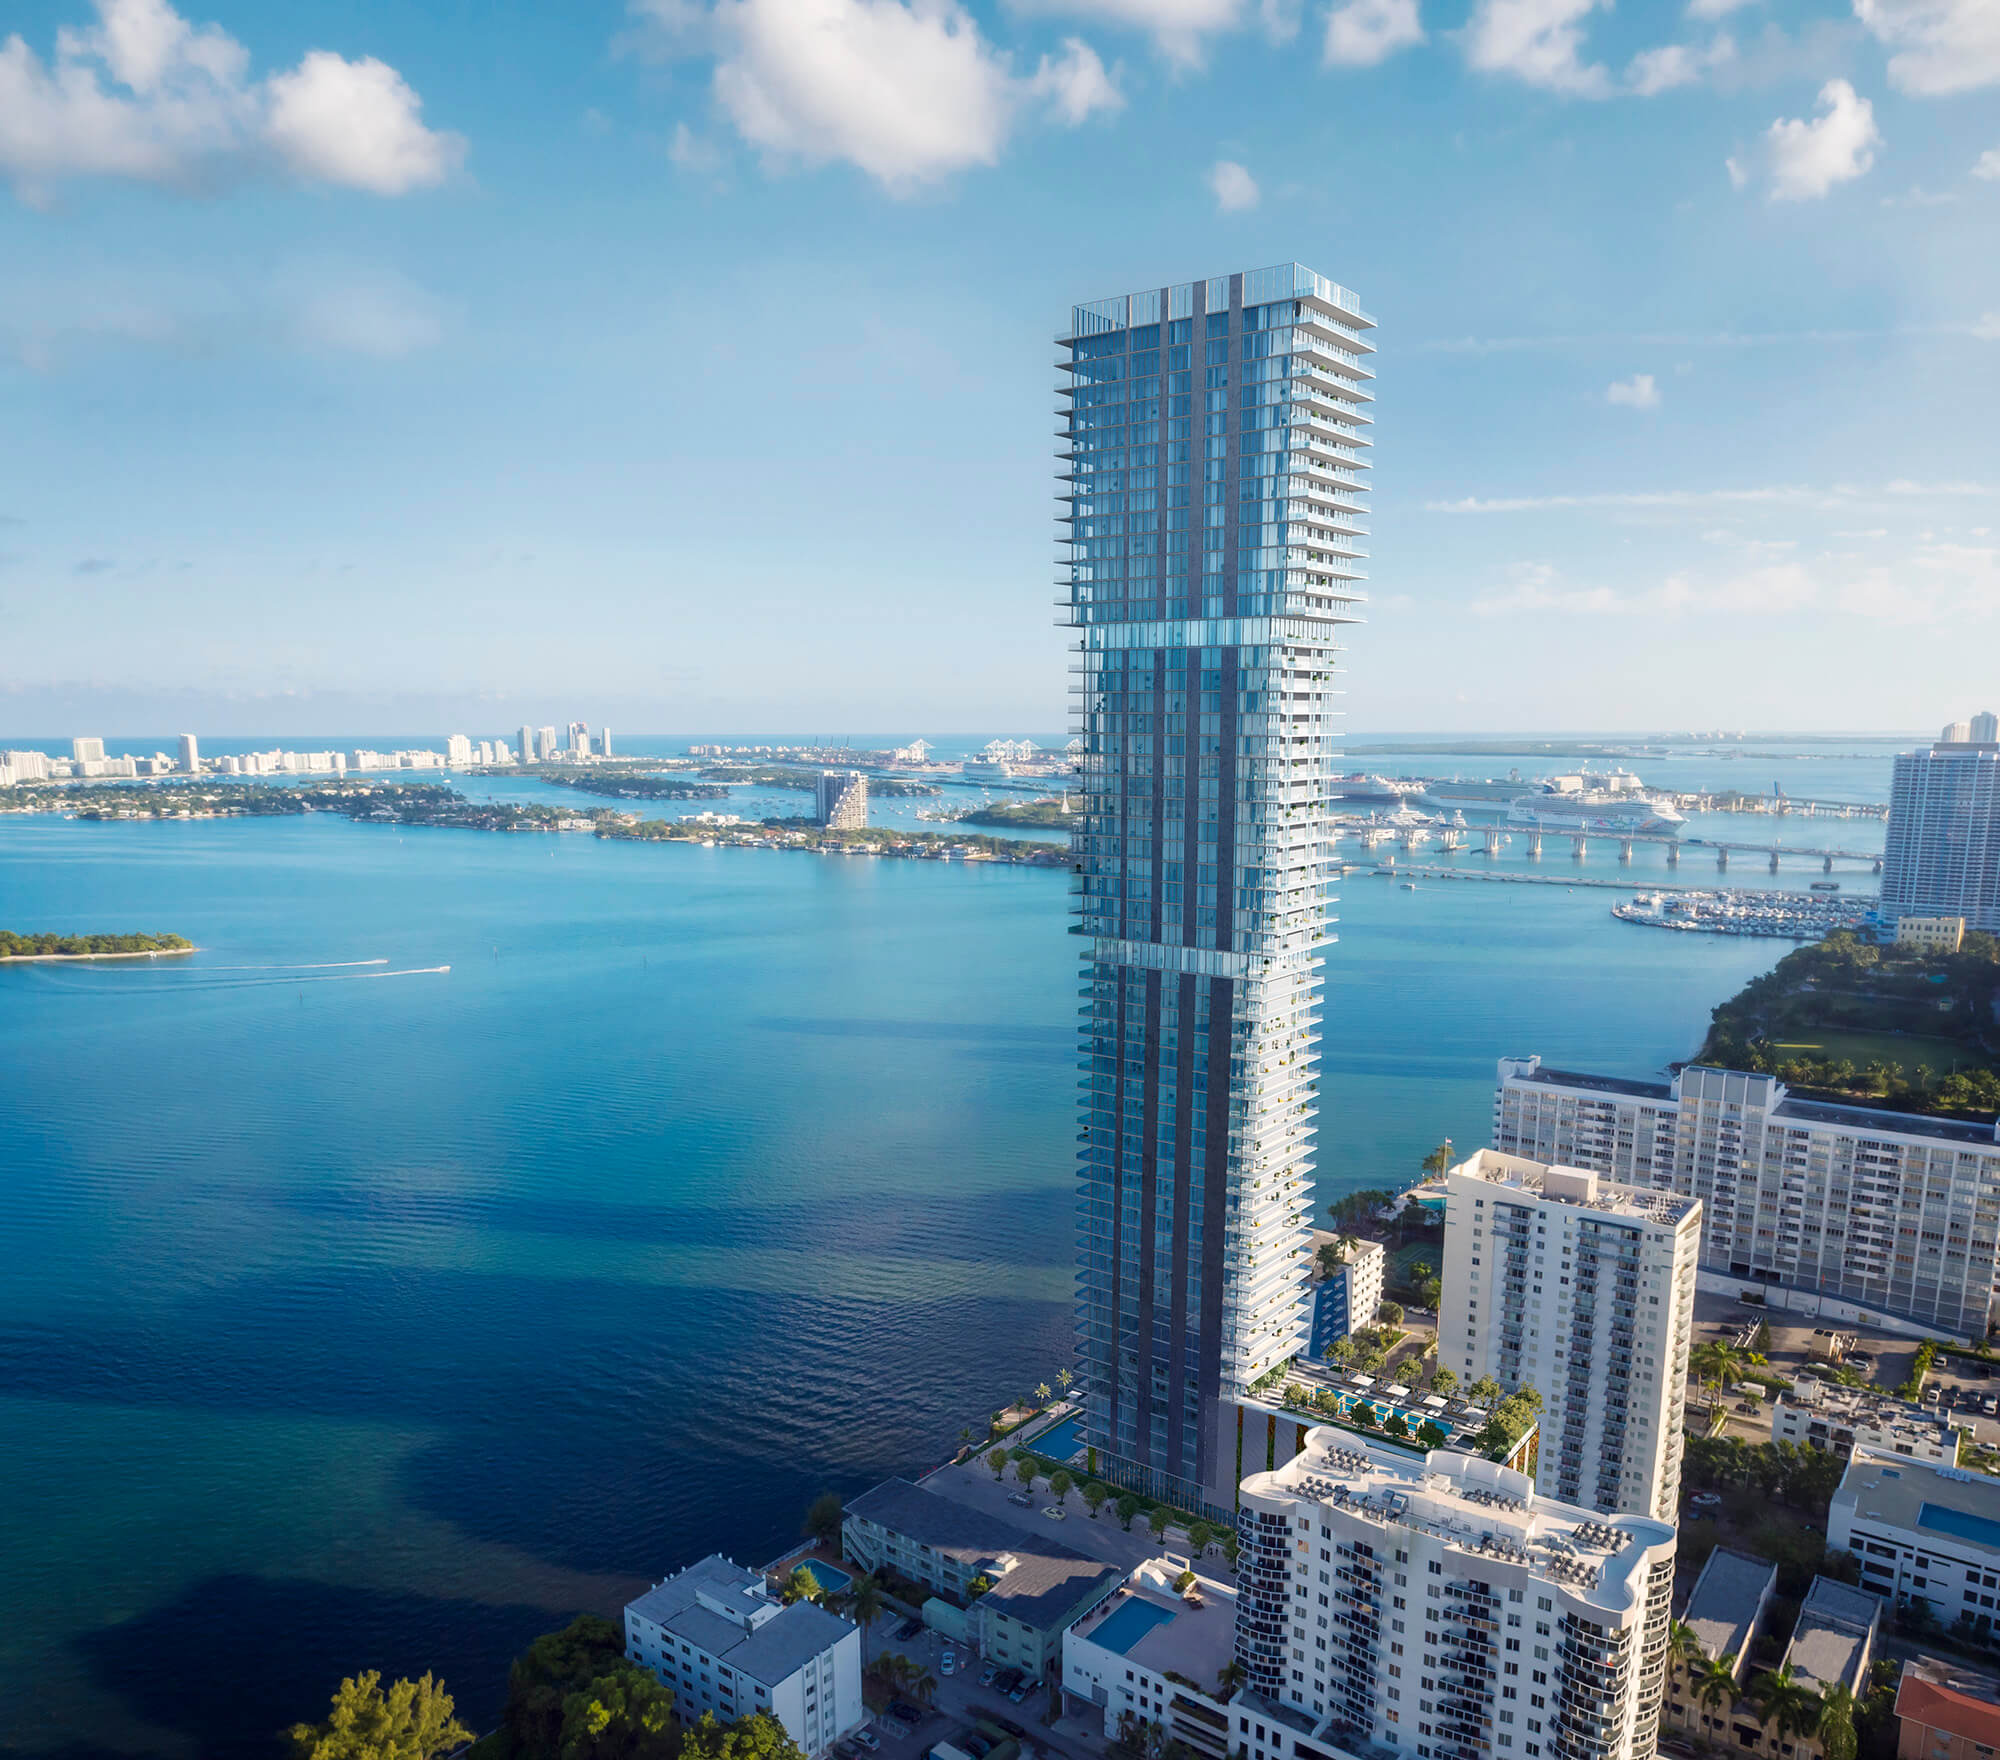 Elysee Miami has a $138 million construction loan from a blue-chip New York Bank